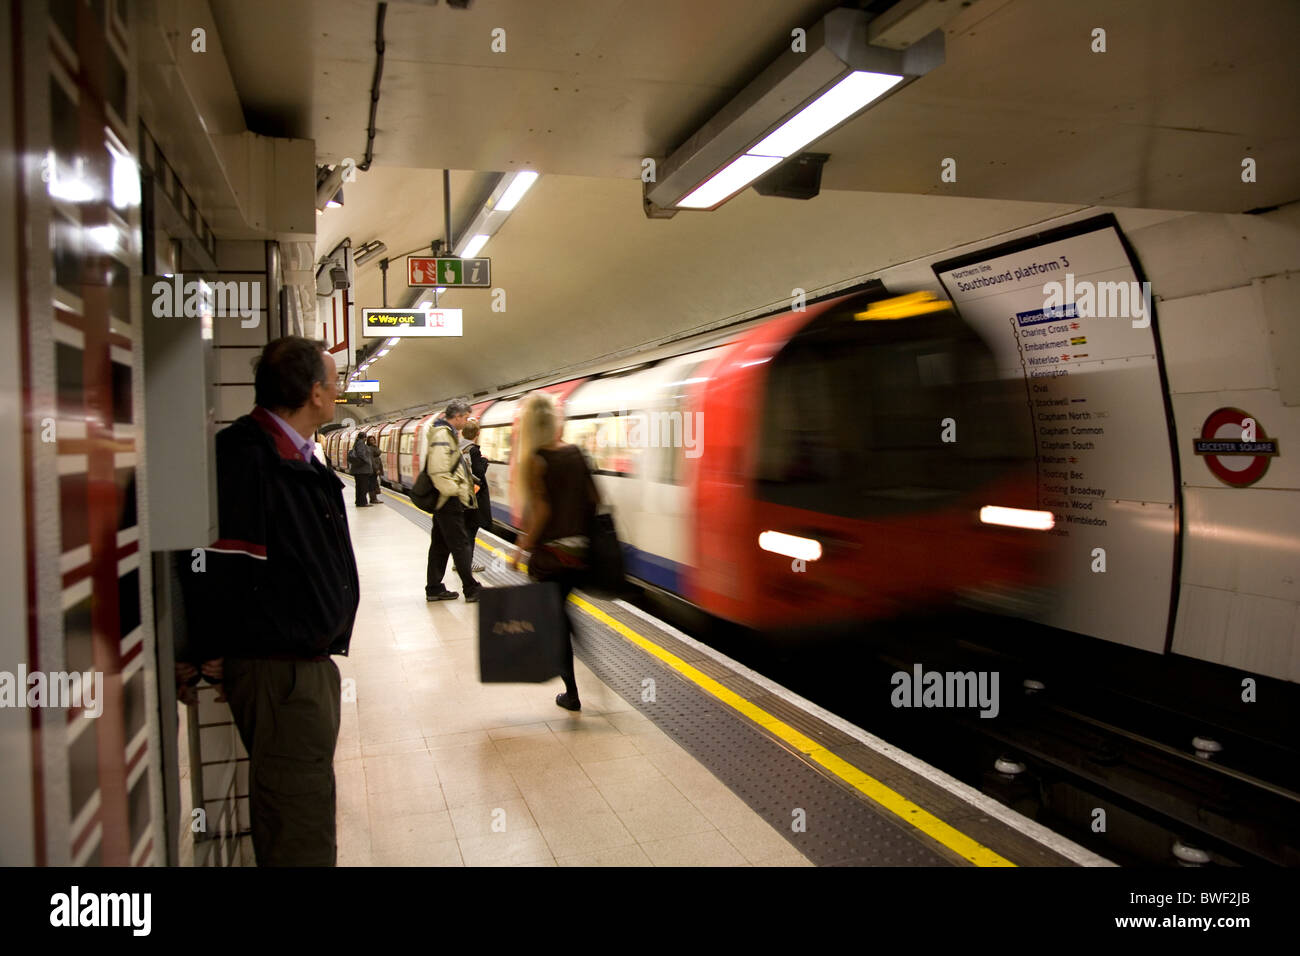 Waiting for Northern Line, Tube on Leicester Square - London UK - Stock Image